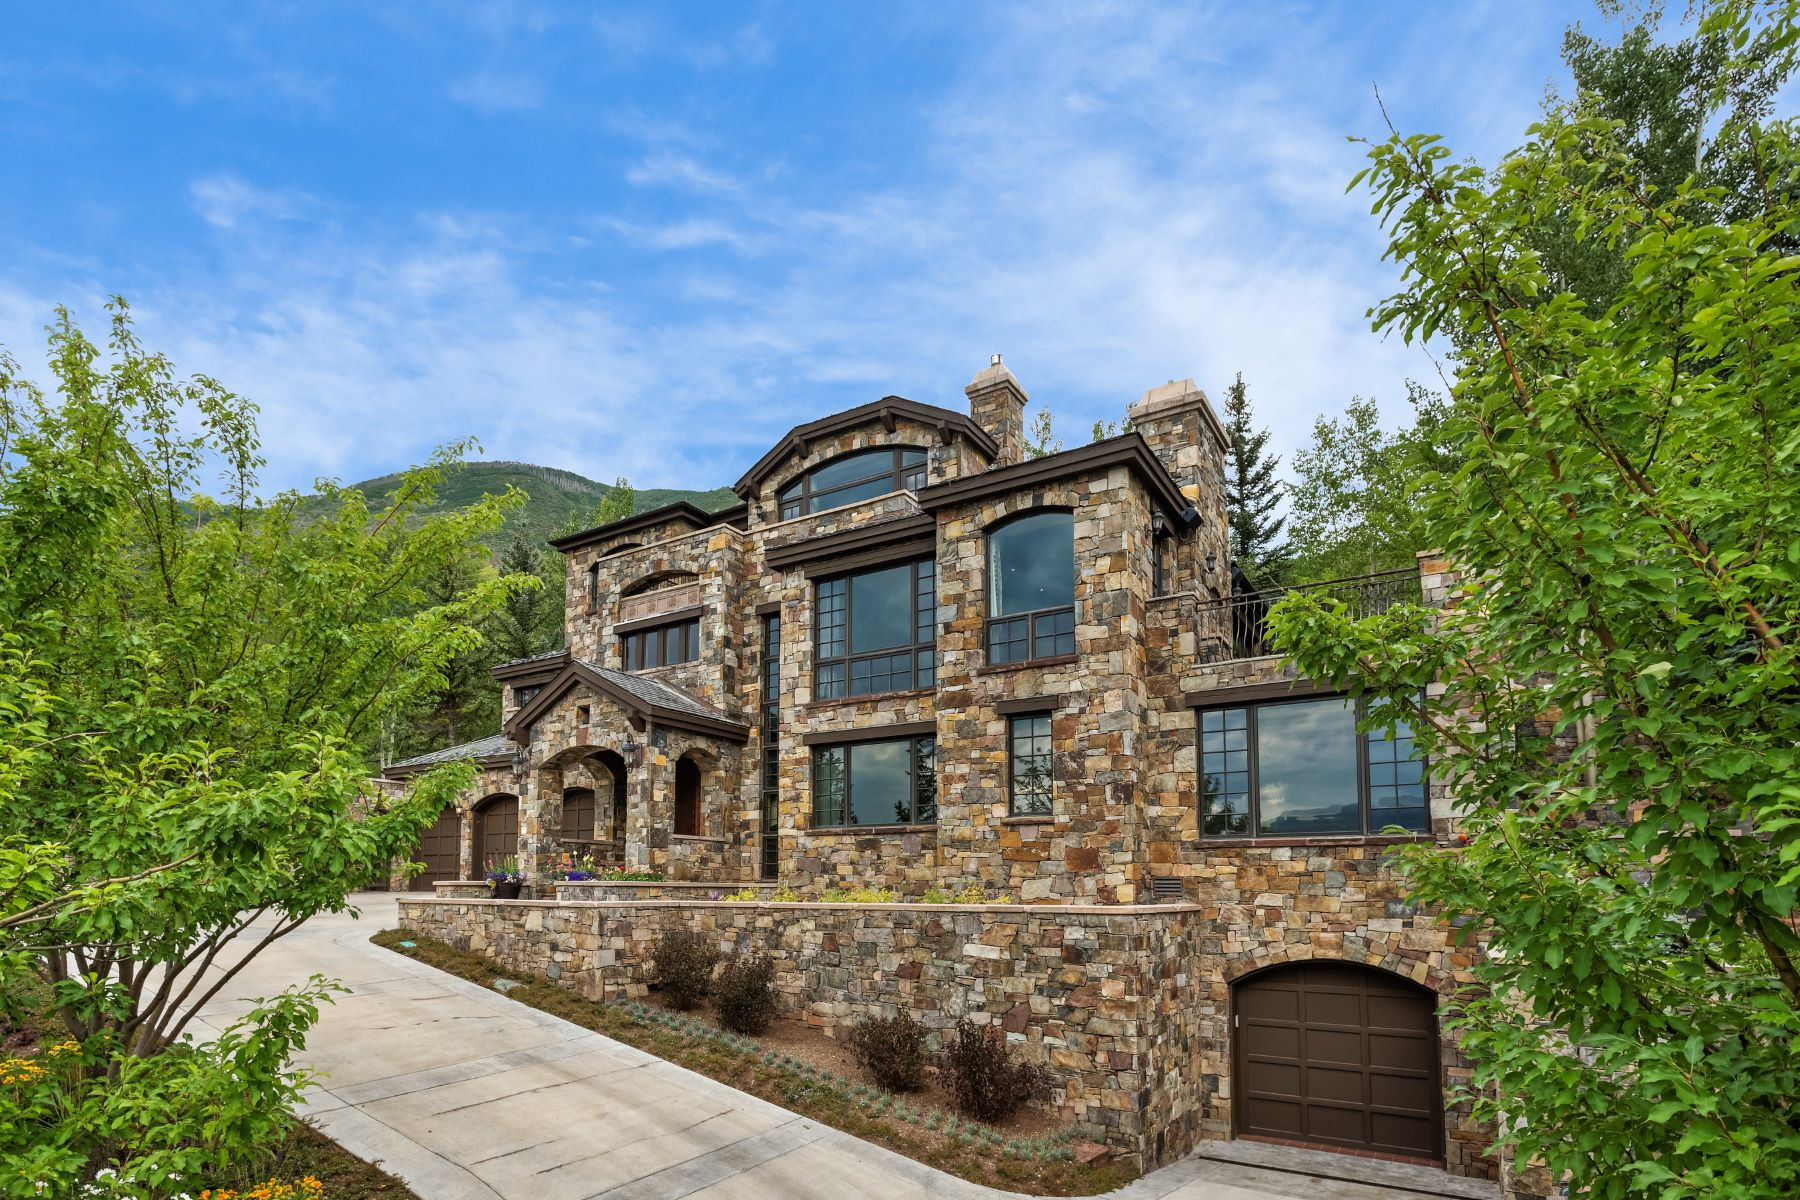 獨棟家庭住宅 為 出售 在 Elevated Living on Red Mountain 1124 Red Mountain Road Red Mountain, Aspen, 科羅拉多州, 81611 美國